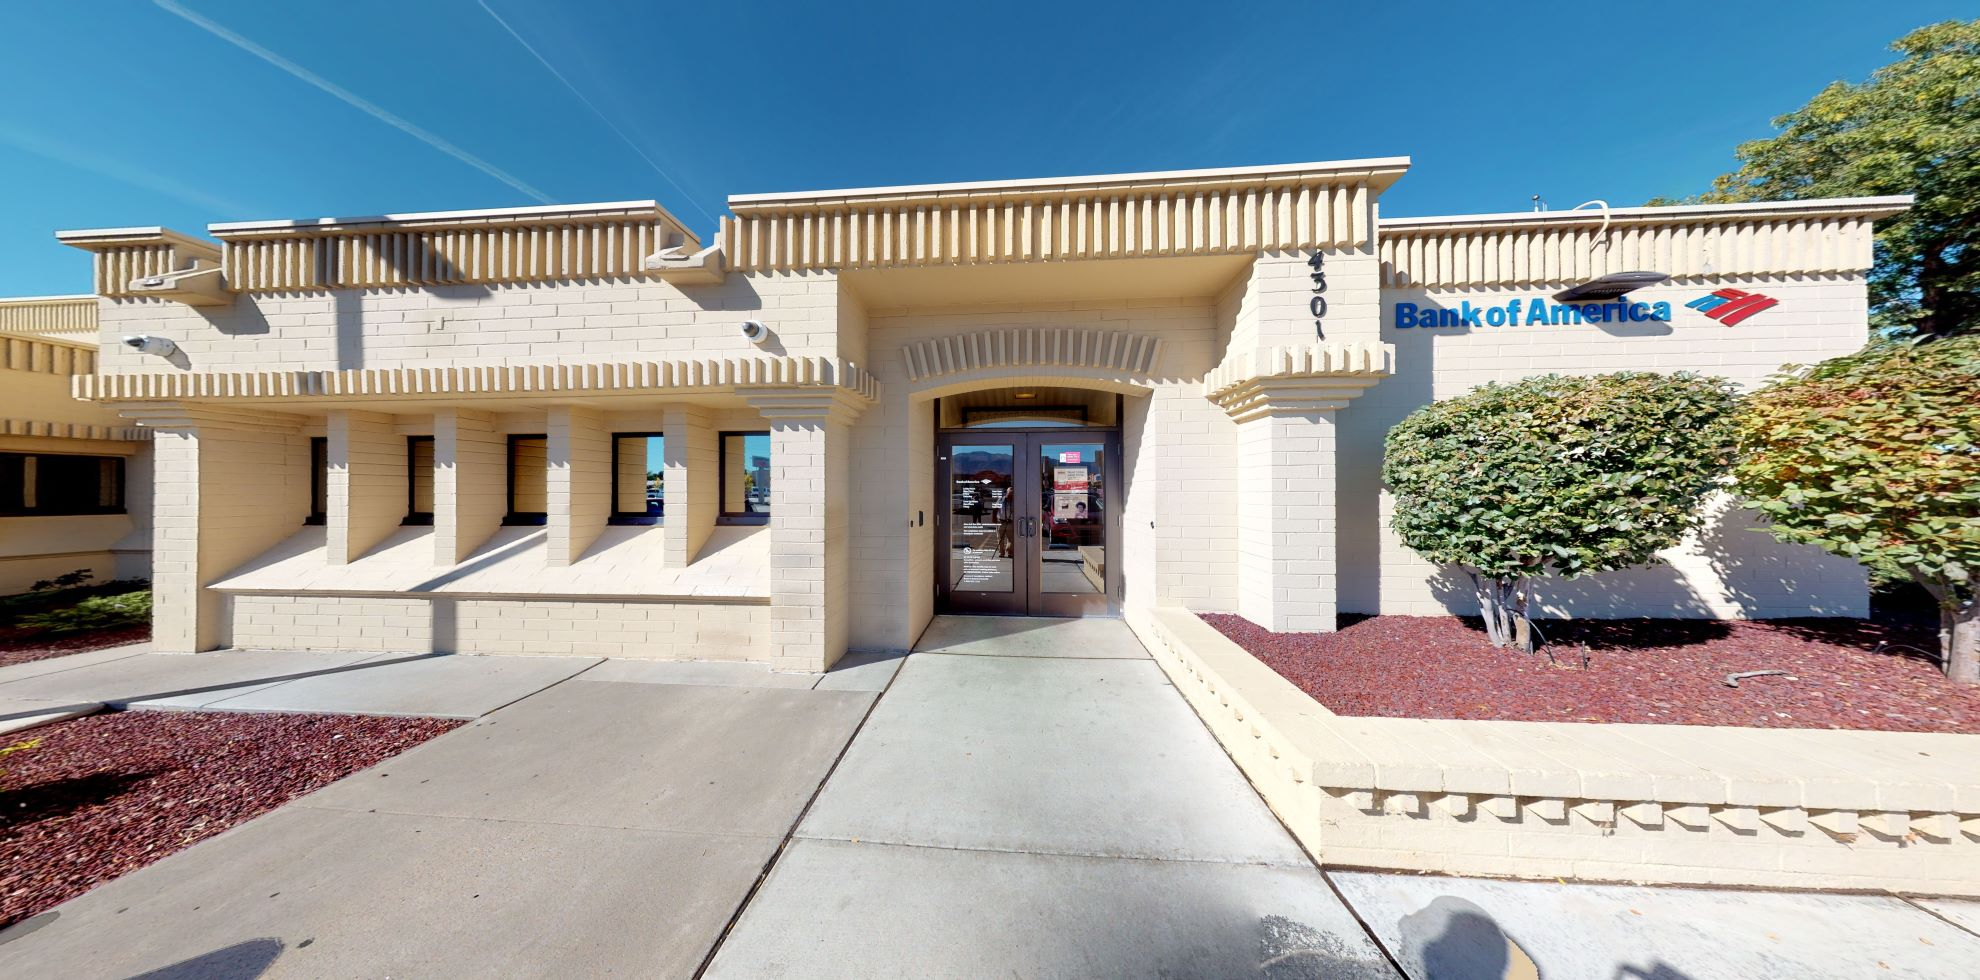 Bank of America financial center with drive-thru ATM and teller | 4301 Wyoming Blvd NE, Albuquerque, NM 87111